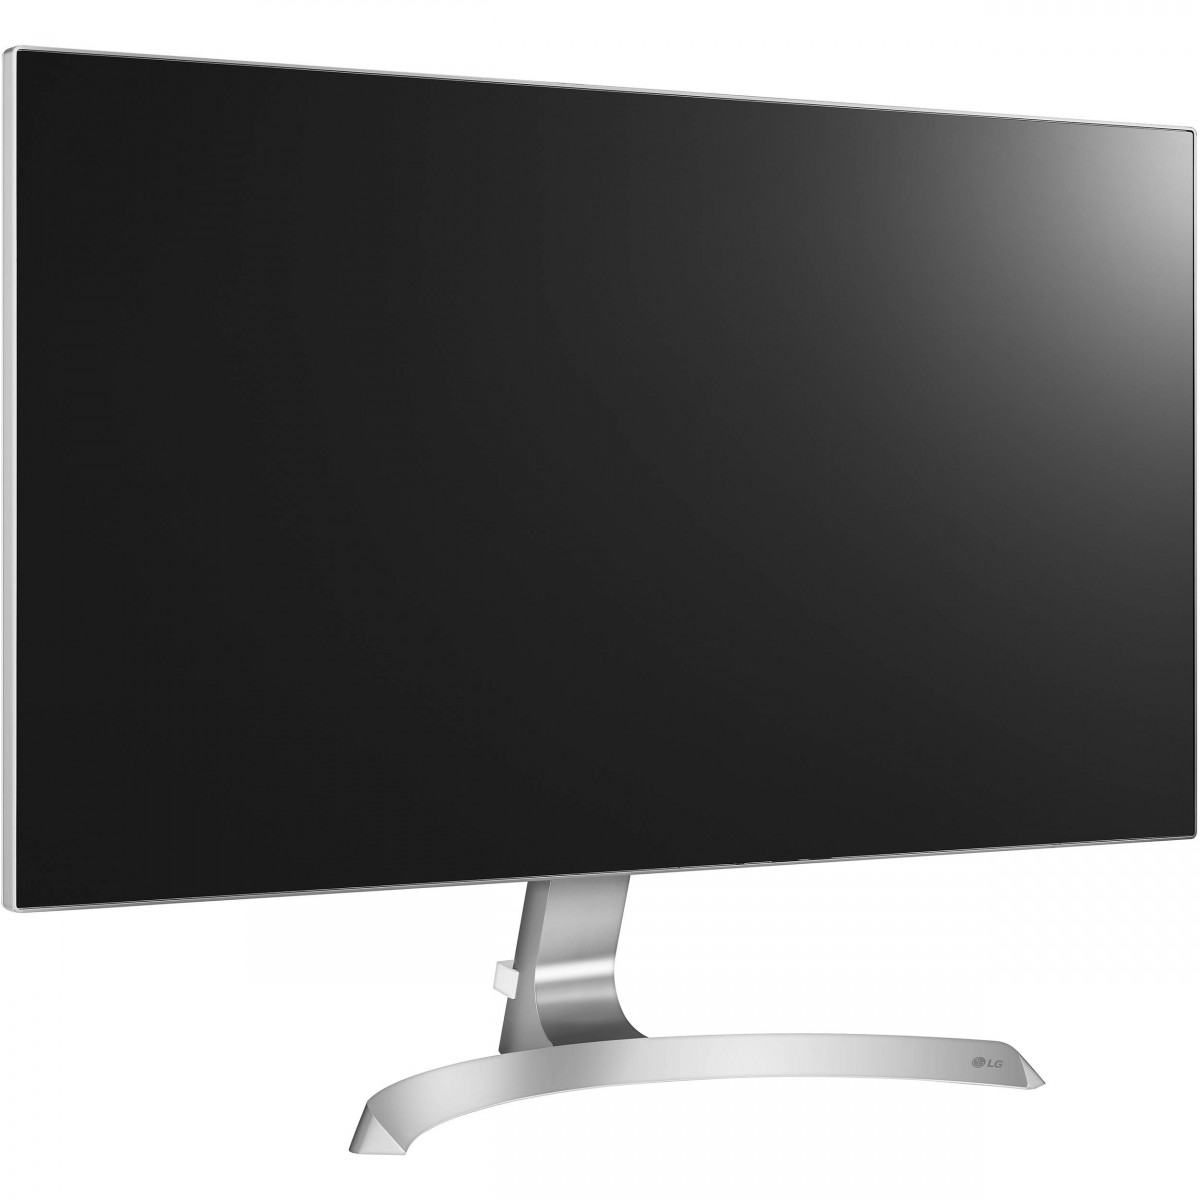 LG 27MP89HM 27'' 1080P sRGB IPS Monitor (Borderless)